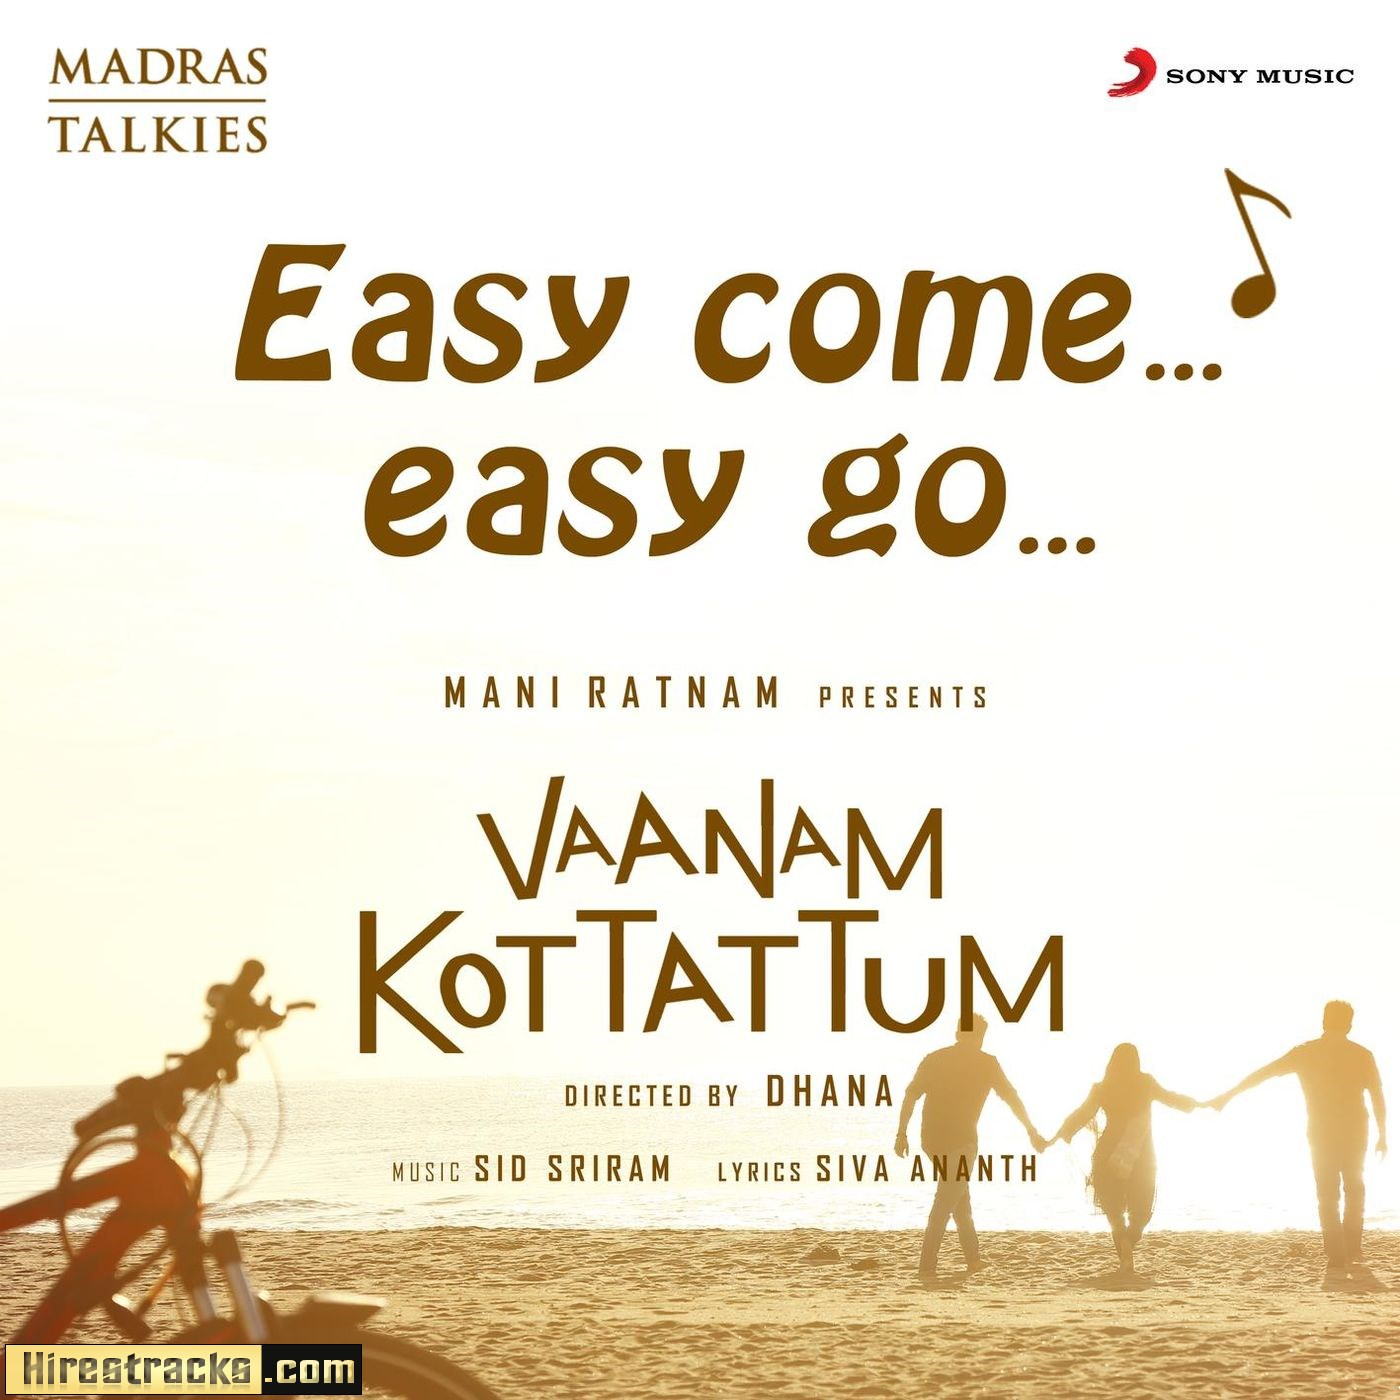 Easy Come Easy Go (From Vaanam Kottattum) (2019) (Sid Sriram) (Sony Music) [Digital-DL-FLAC]